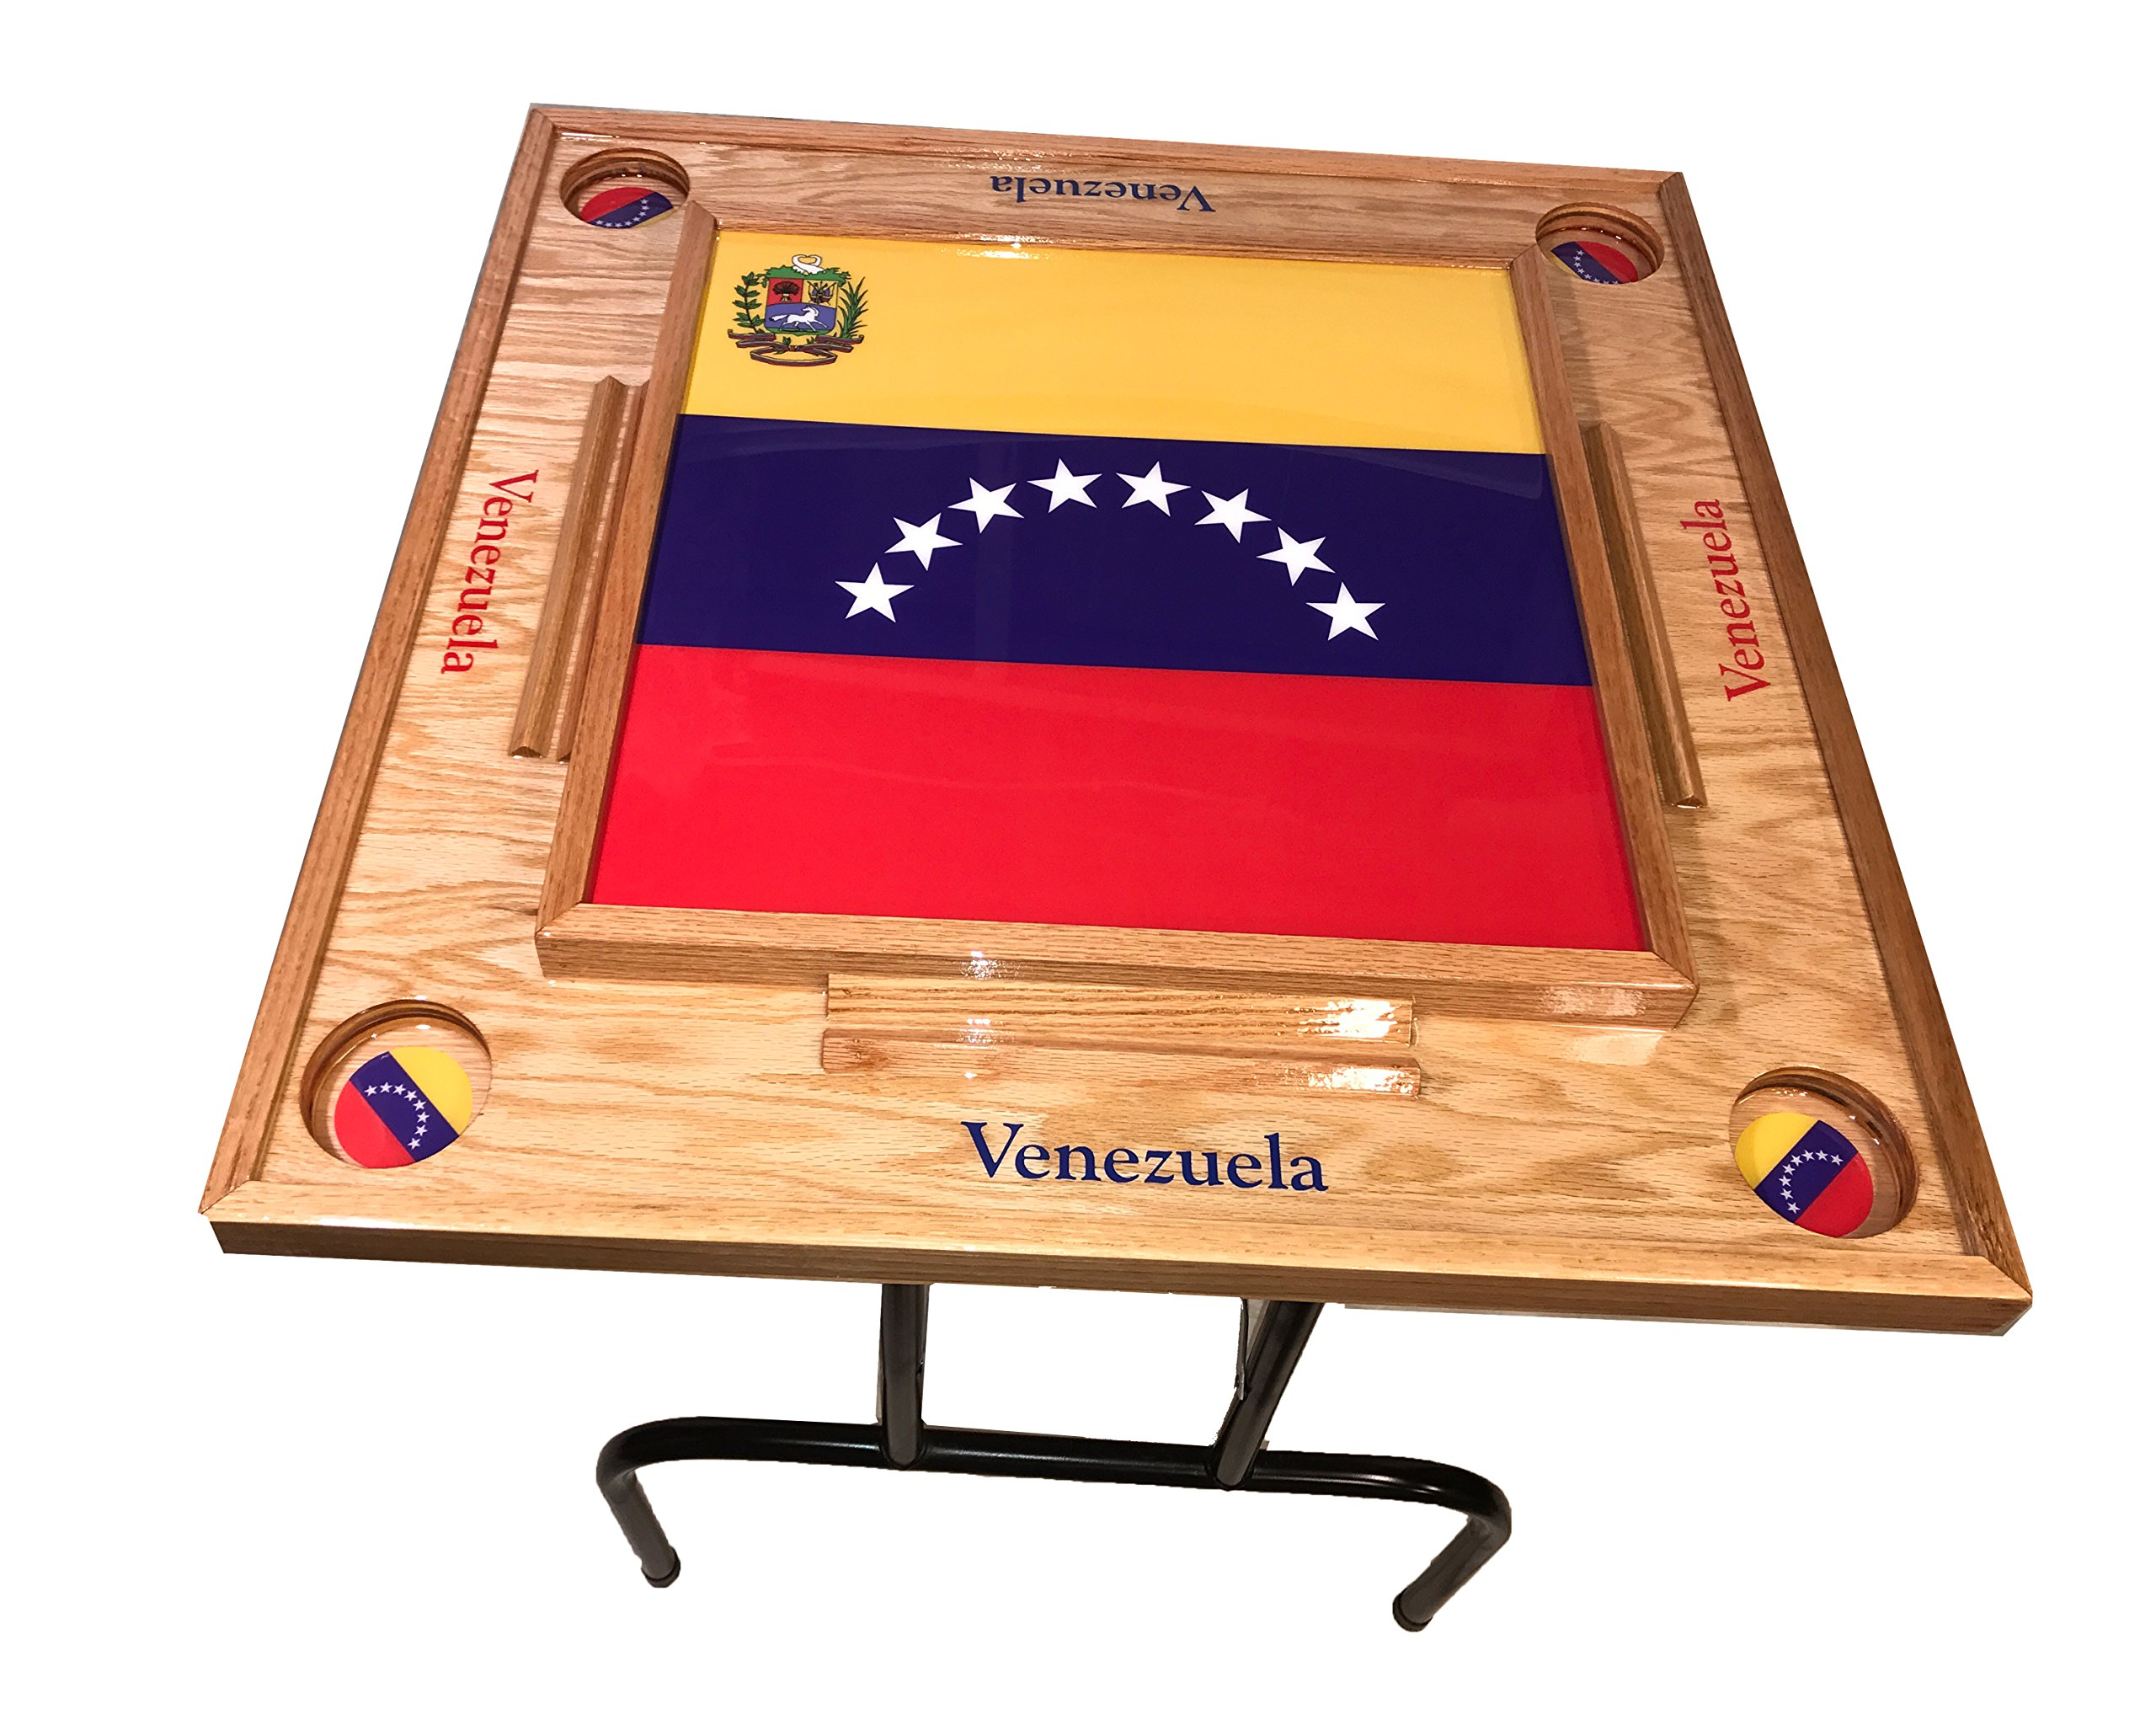 Venezuela Domino Table the full Flag by latinos r us